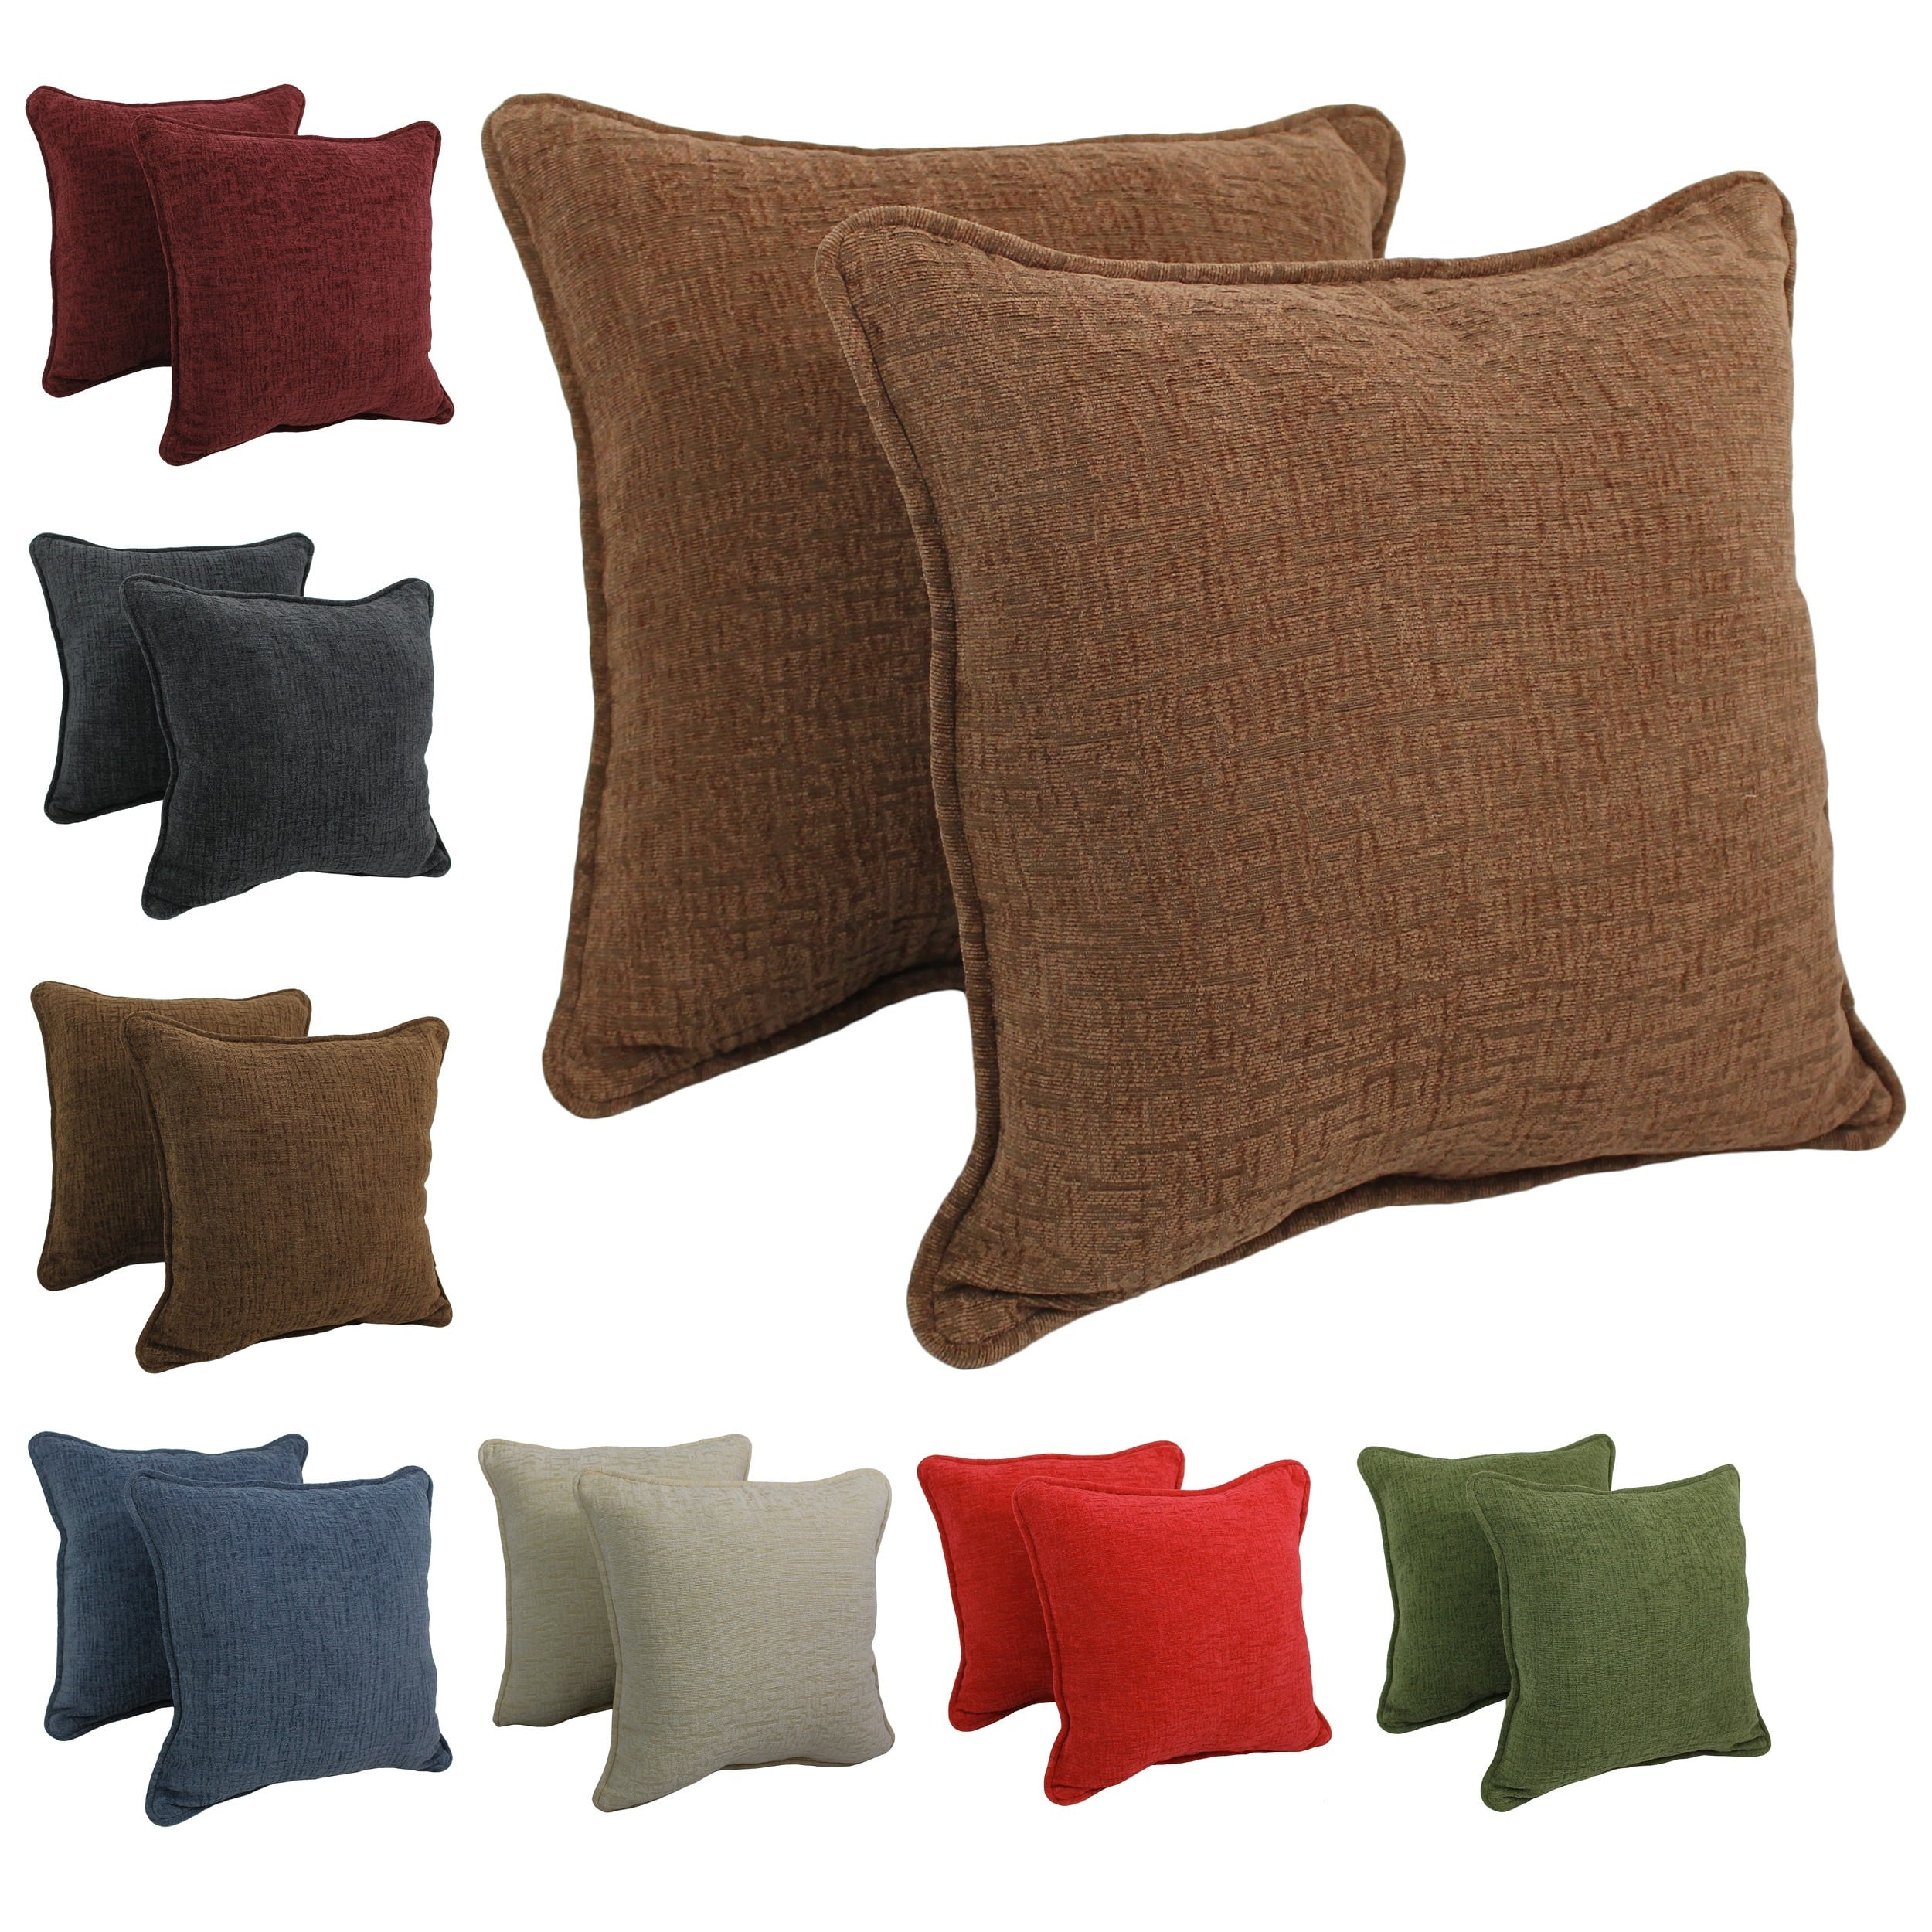 Chenille Throw Pillows Set Of 2 Clearance : Throw Pillows For Less Overstock.com